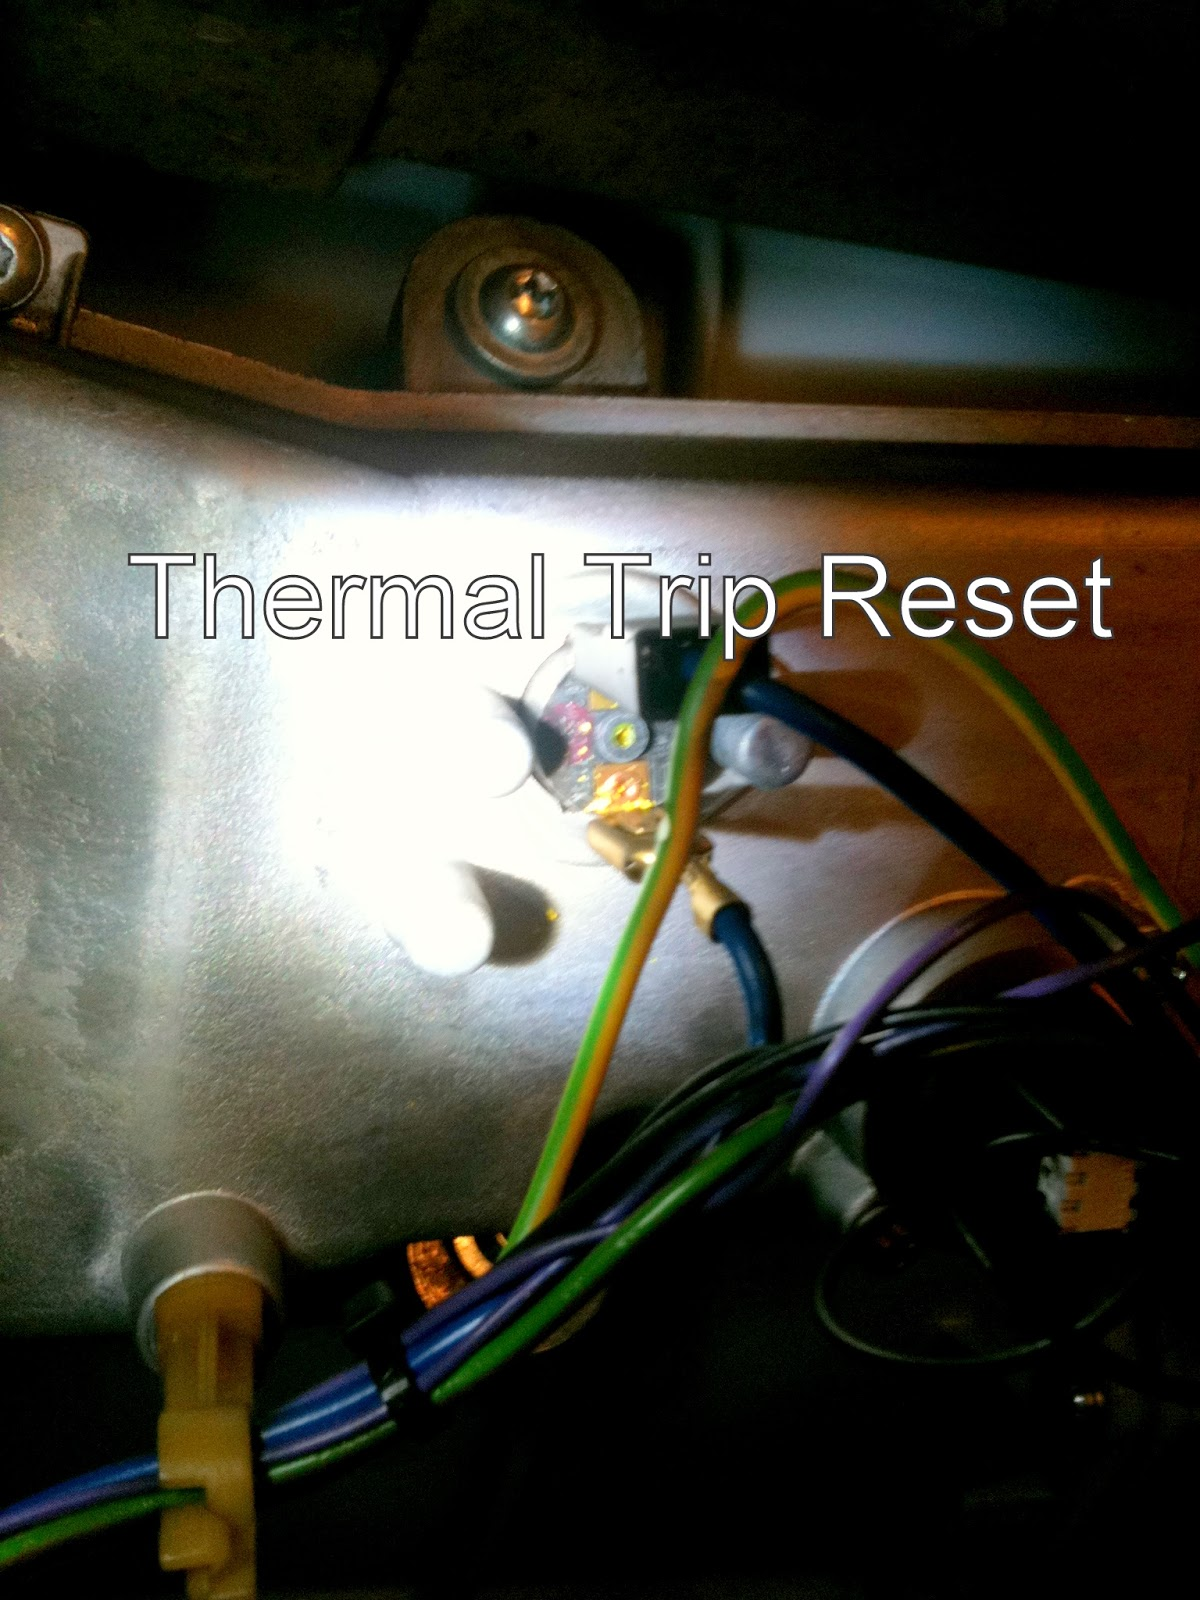 hotpoint washer wiring diagram mods  amp  bodges how to repair an    hotpoint    aquarius wd420  mods  amp  bodges how to repair an    hotpoint    aquarius wd420